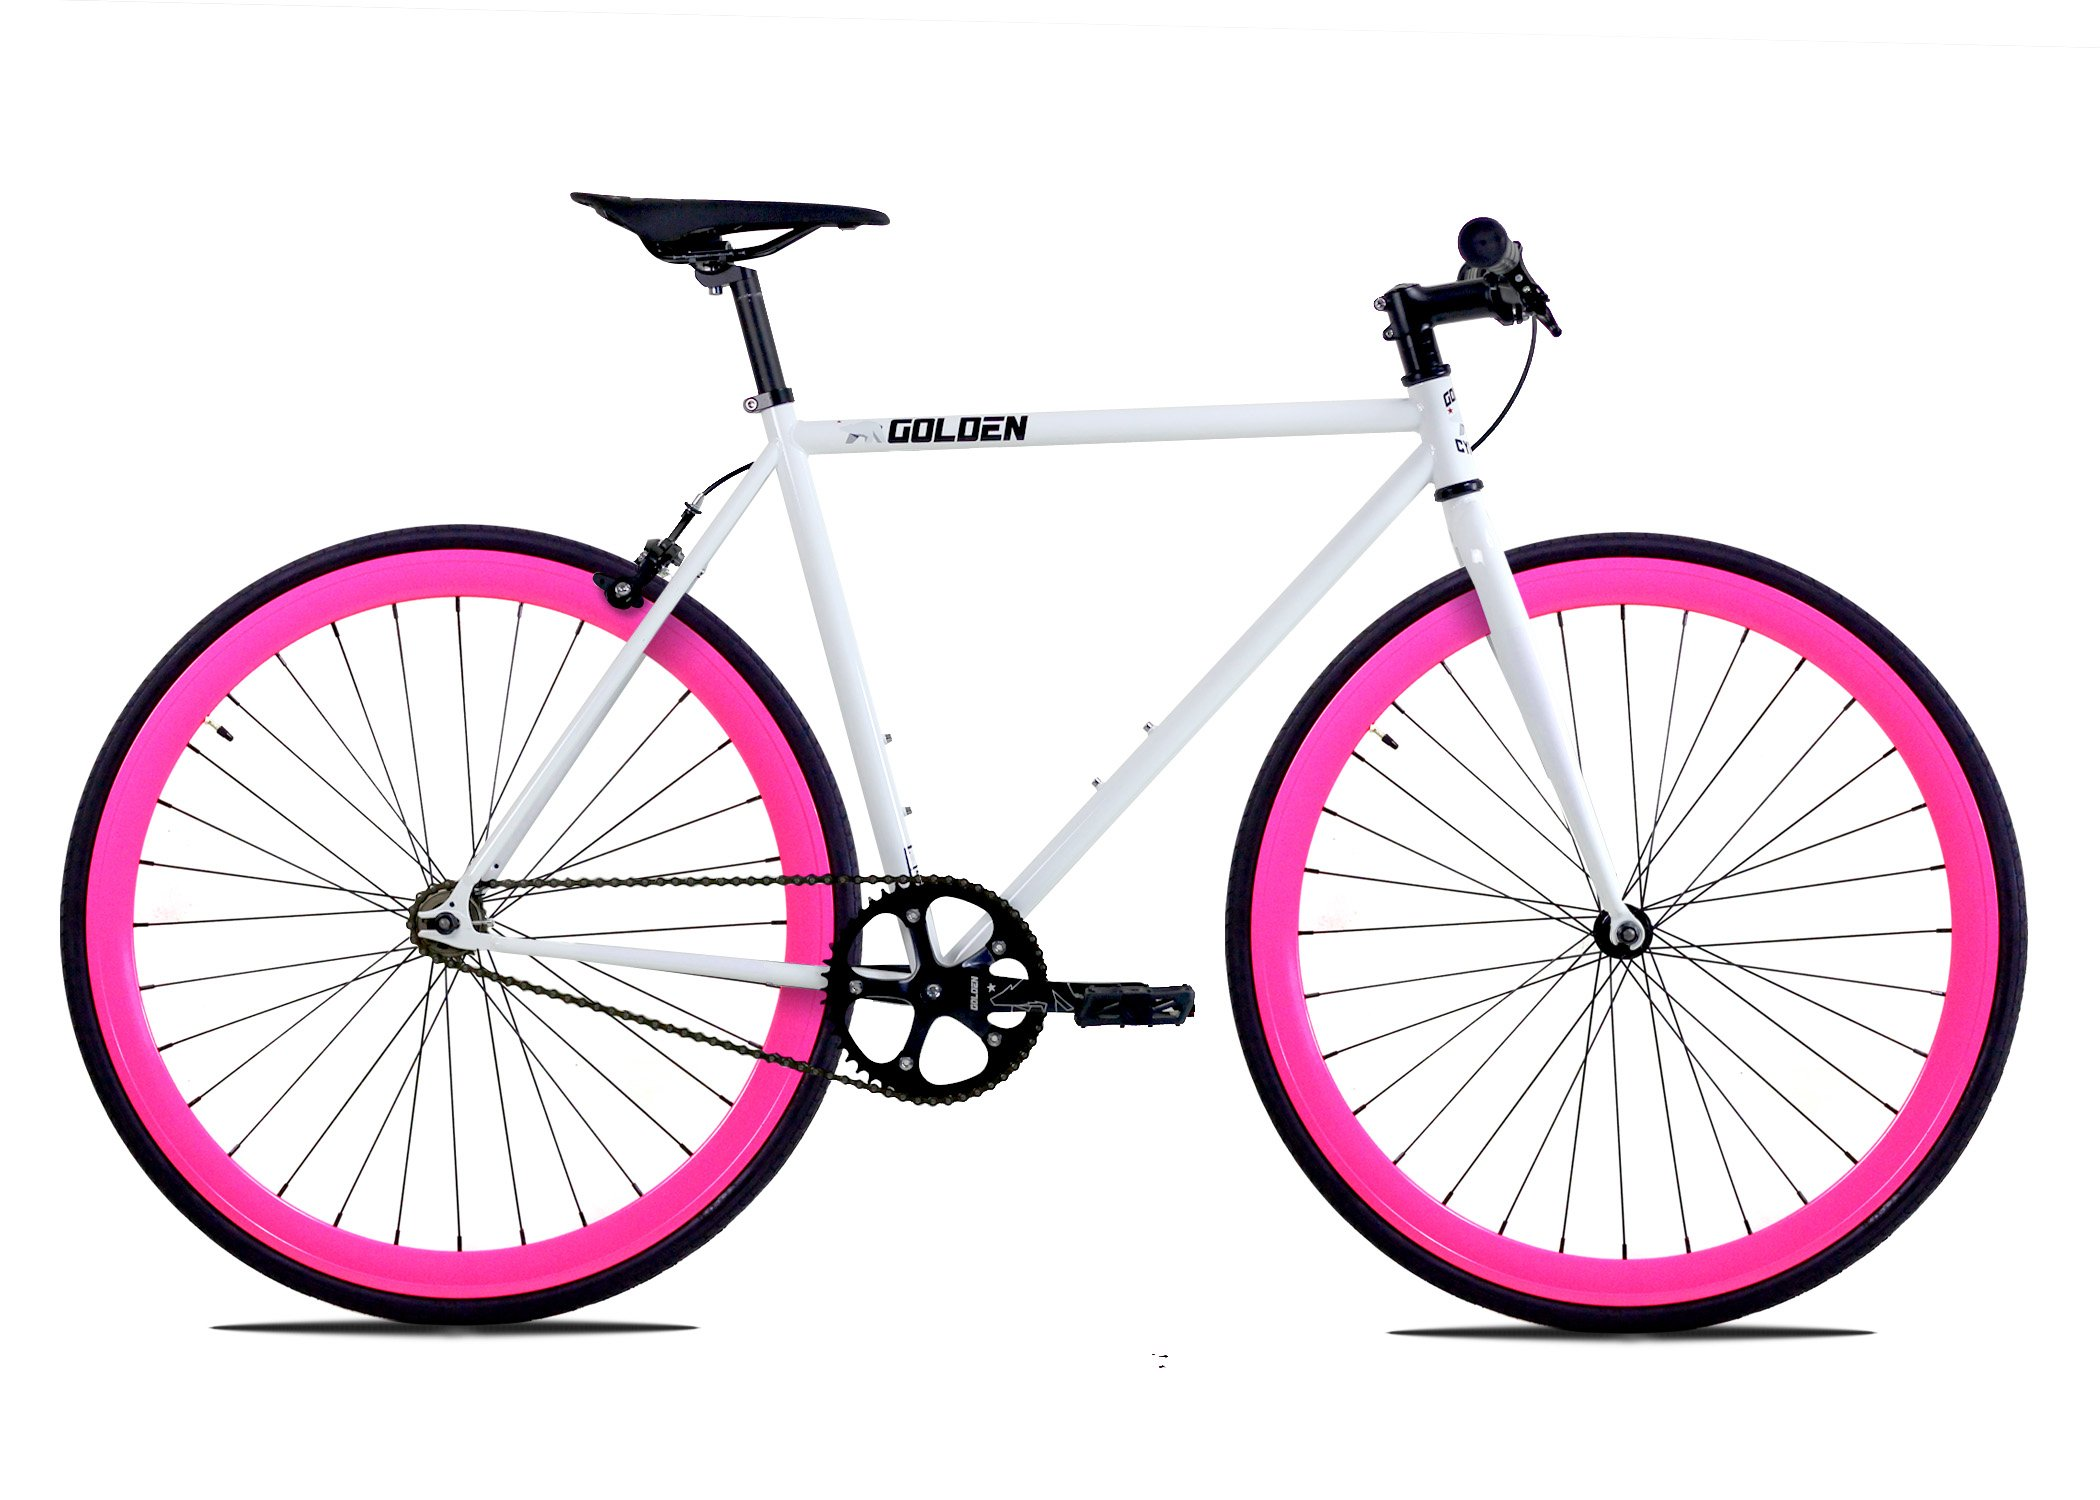 Golden Cycles Single Speed Fixed Gear Bike with Front & Rear Brakes(Dahlia 48), White/Pink